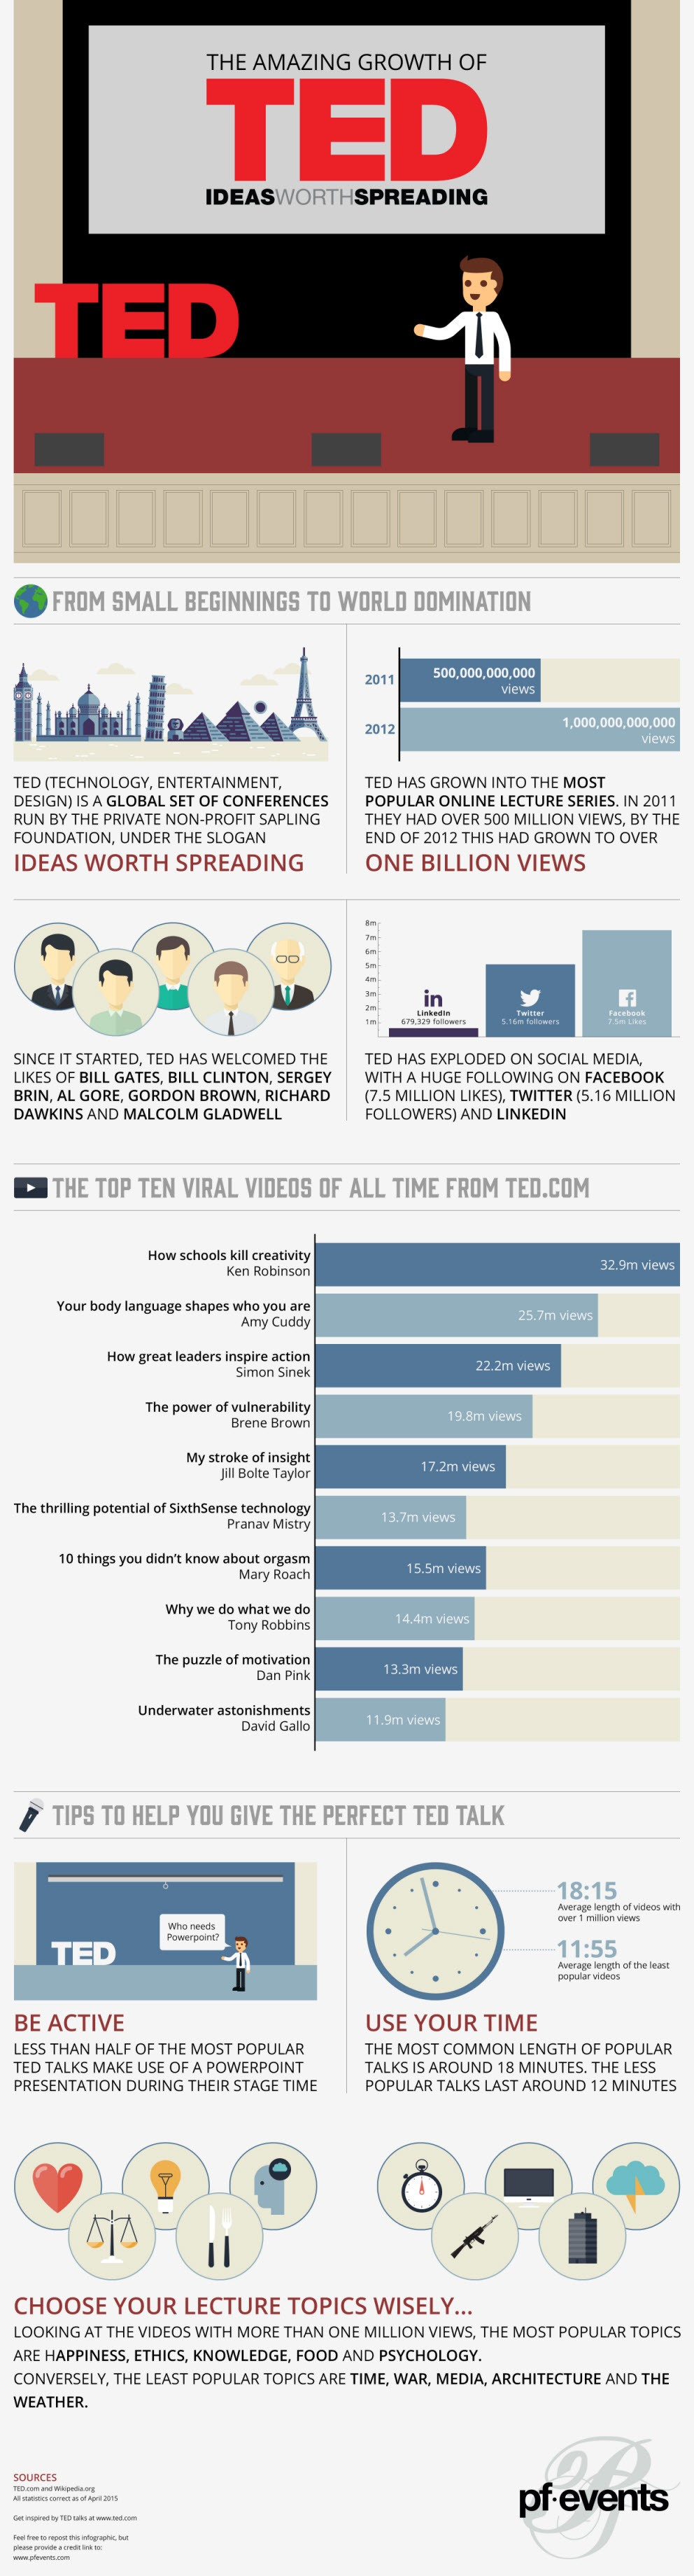 The Amazing Growth of TED Talks Infographic